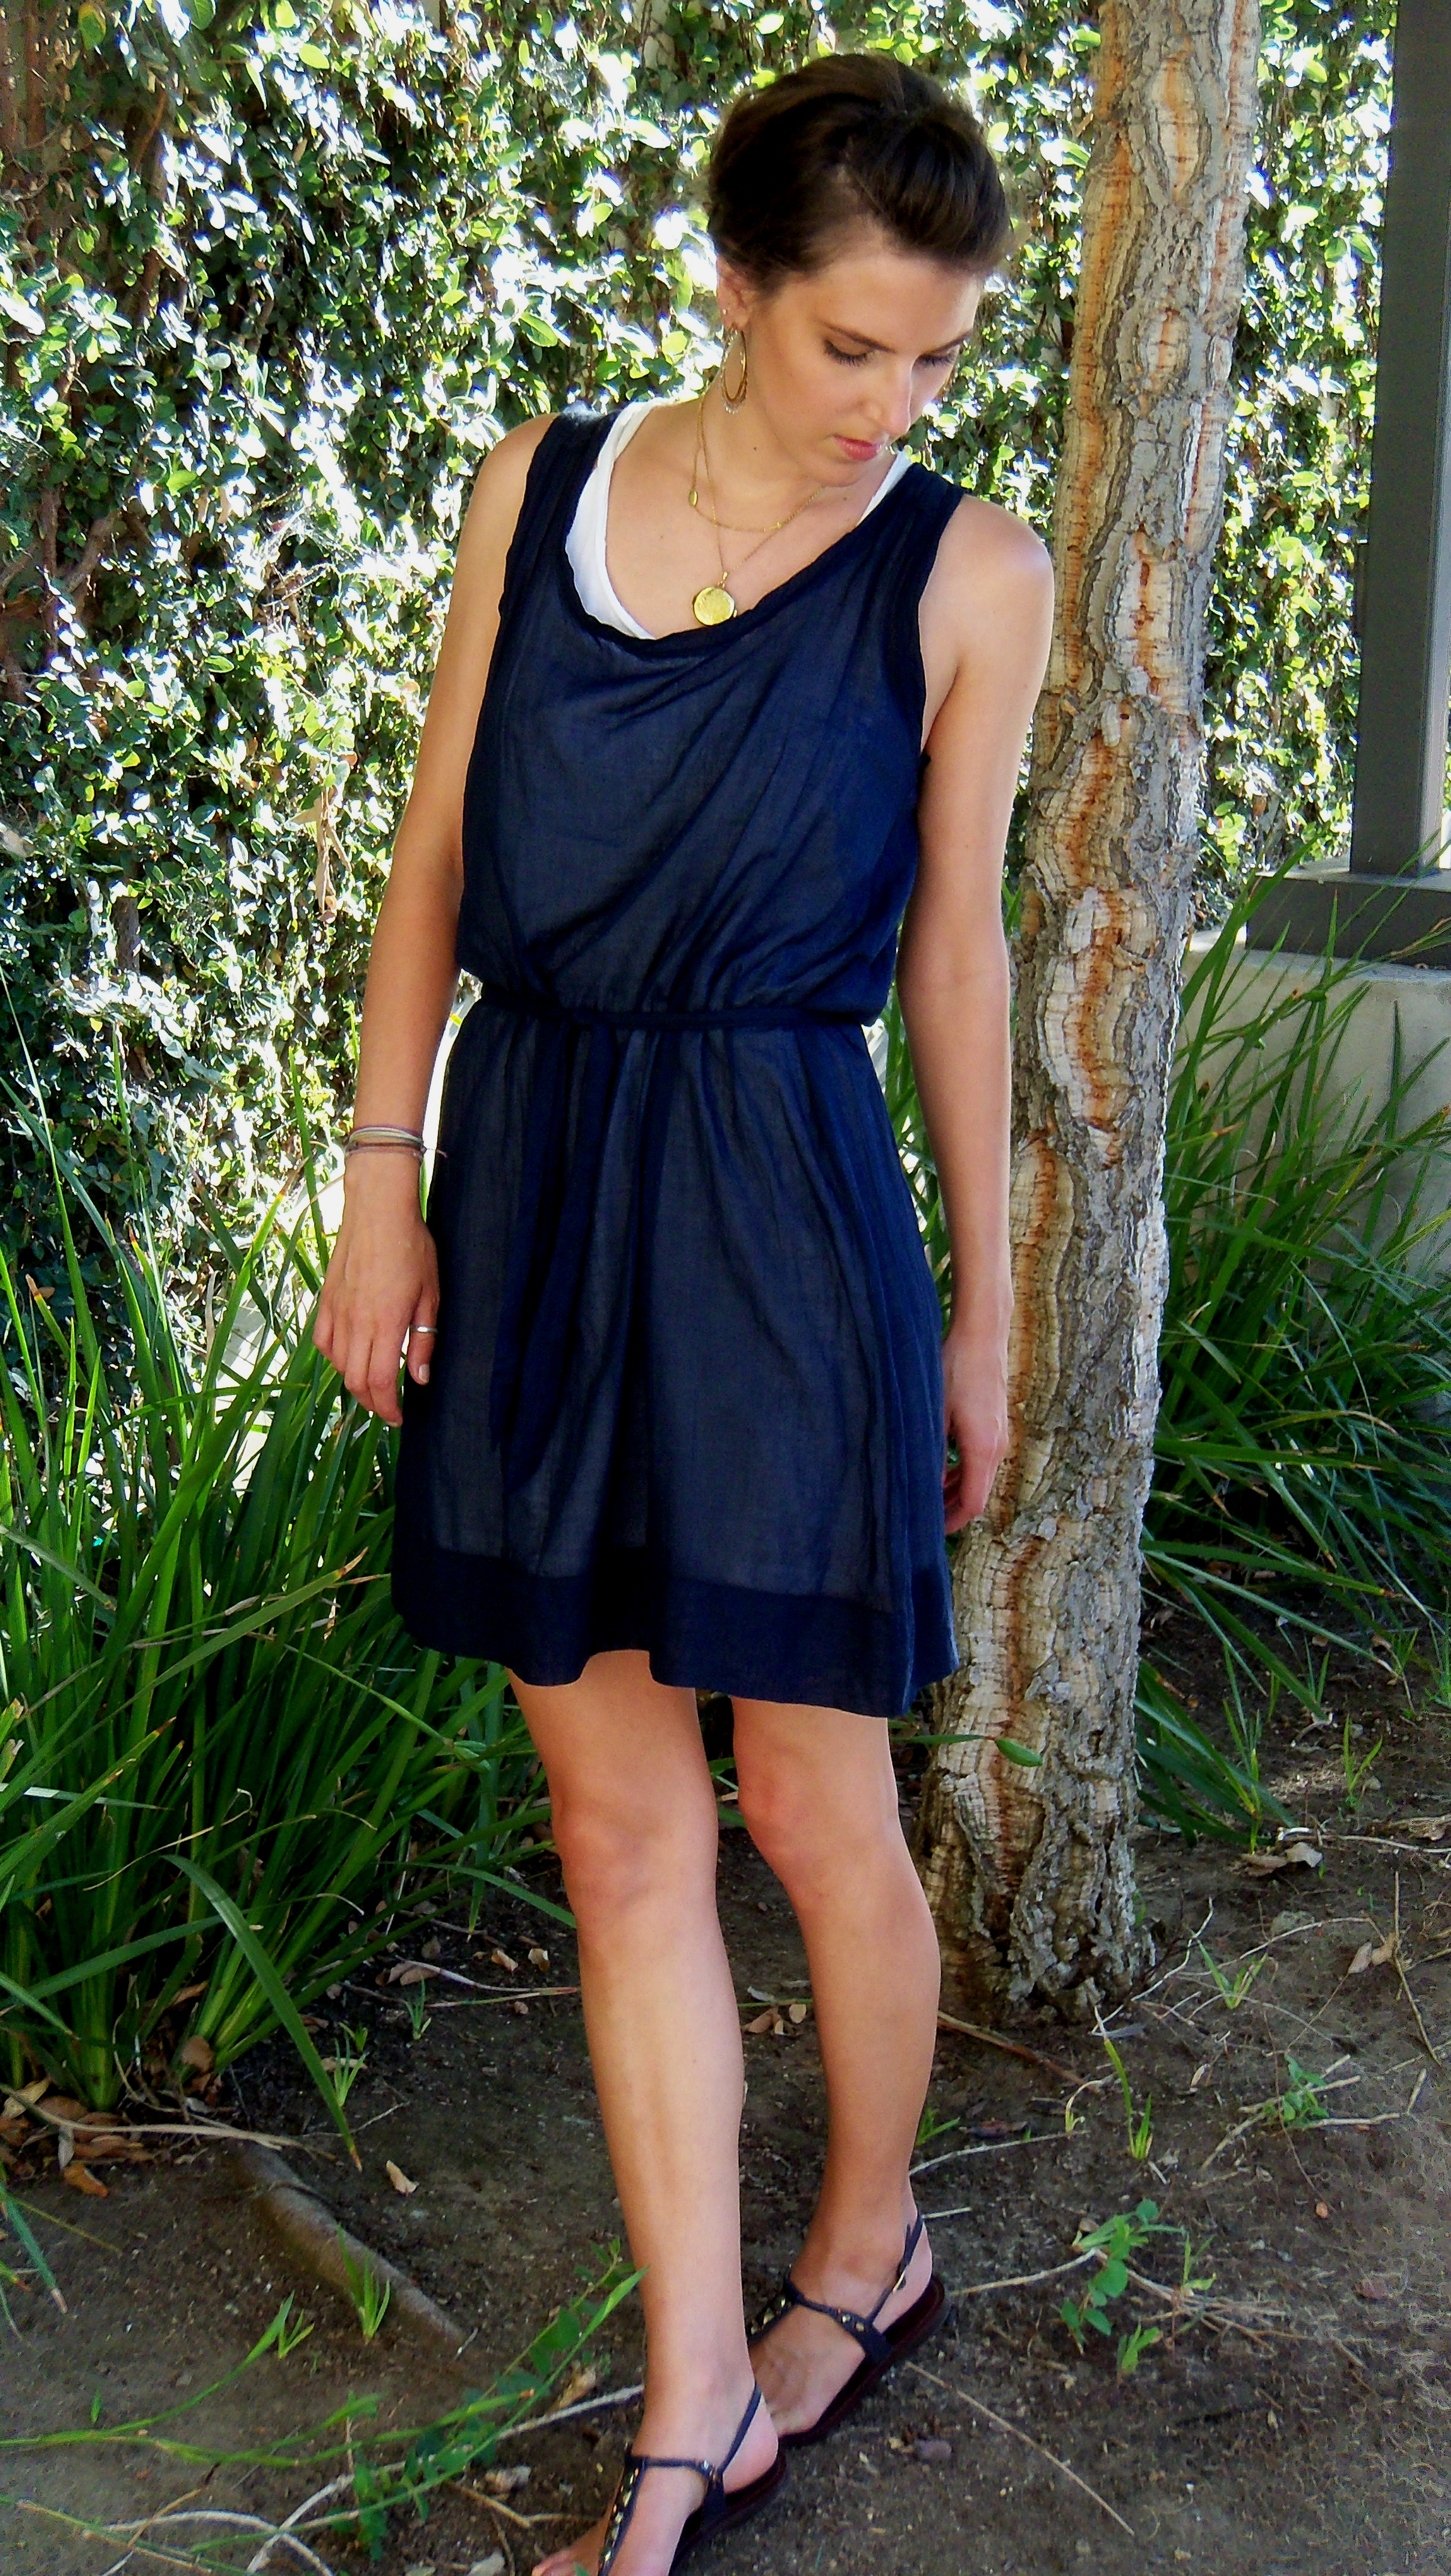 Find great deals on eBay for my girl dress. Shop with confidence.